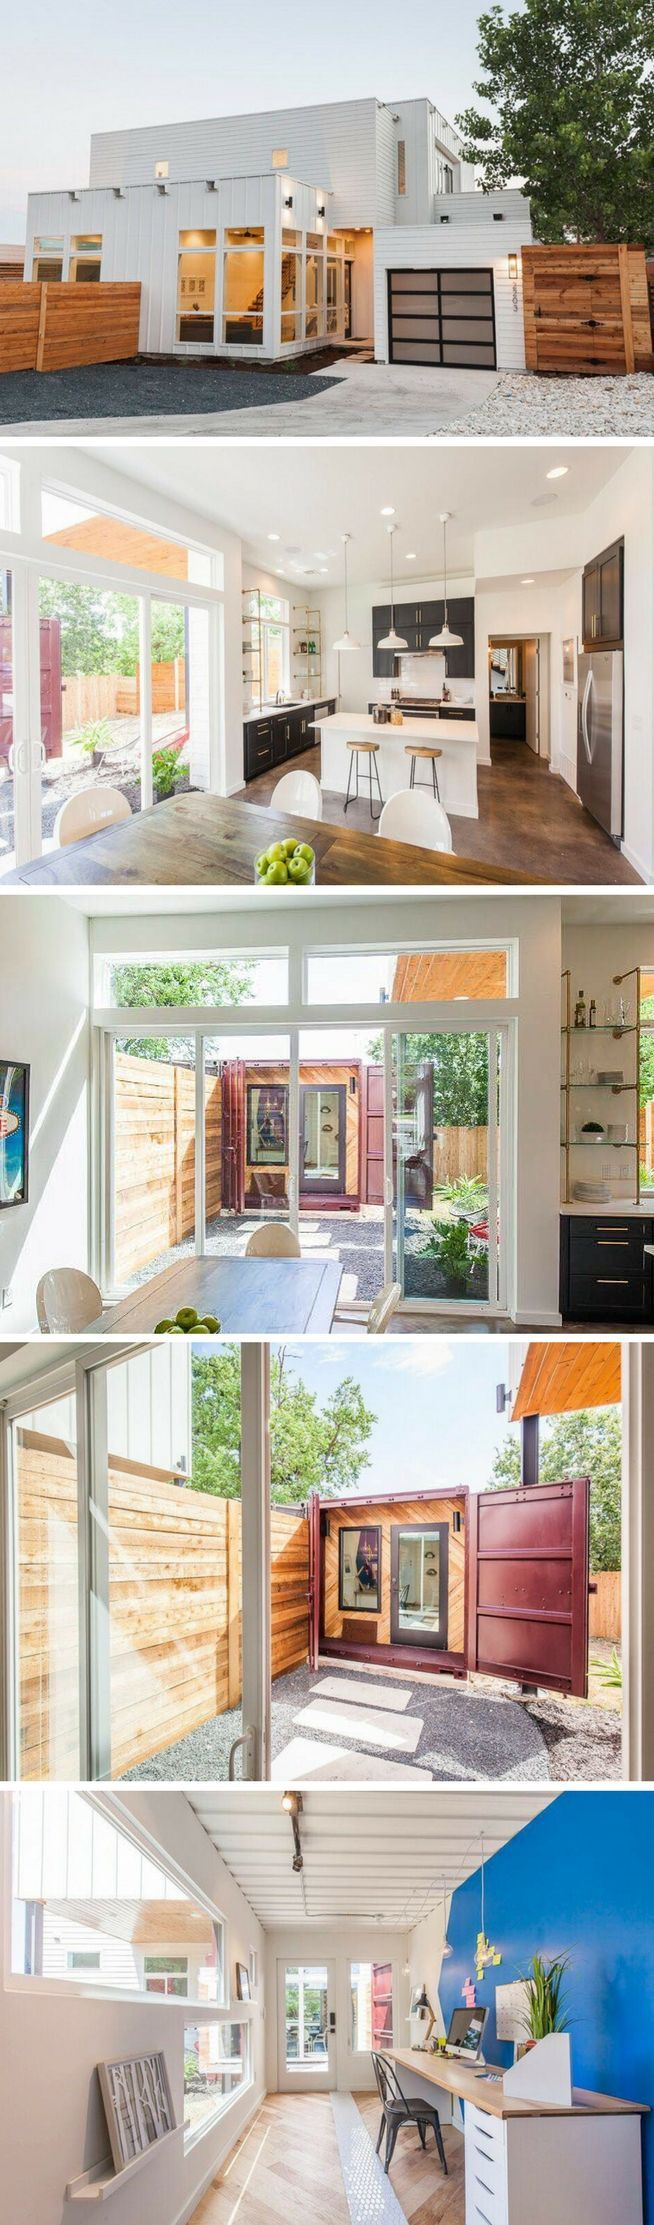 best 25+ shipping container homes ideas on pinterest | container